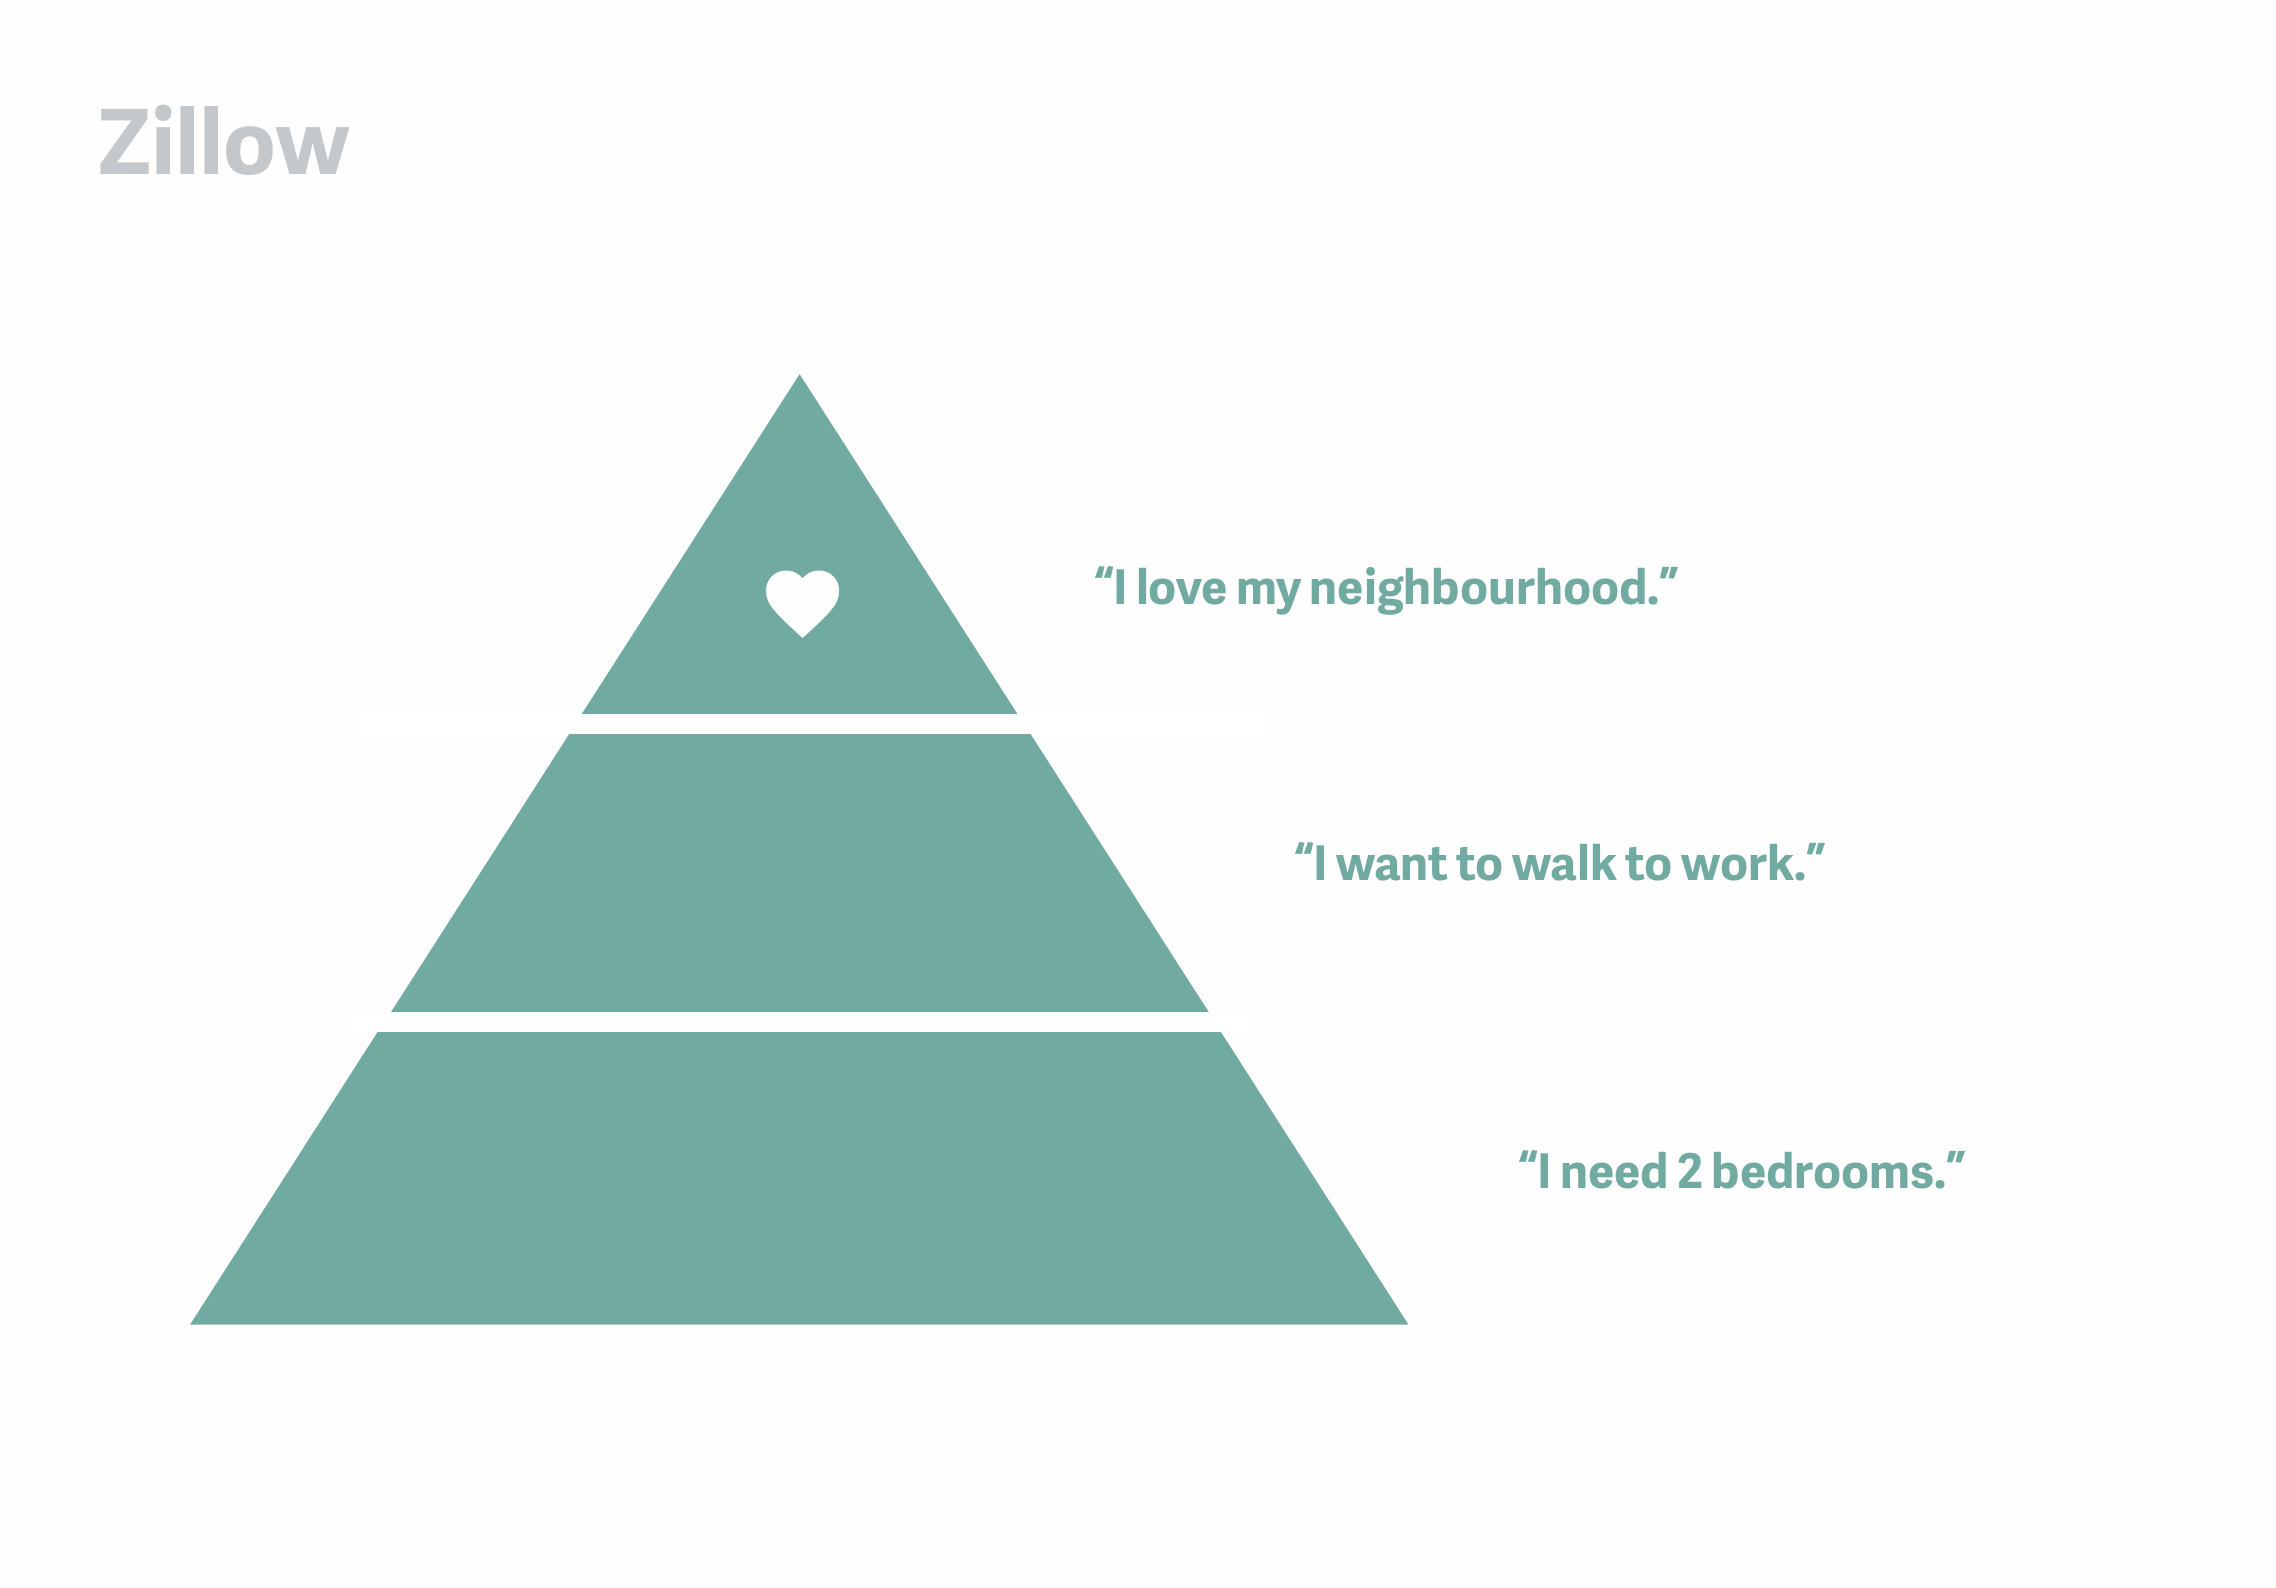 zillow_maslow-3